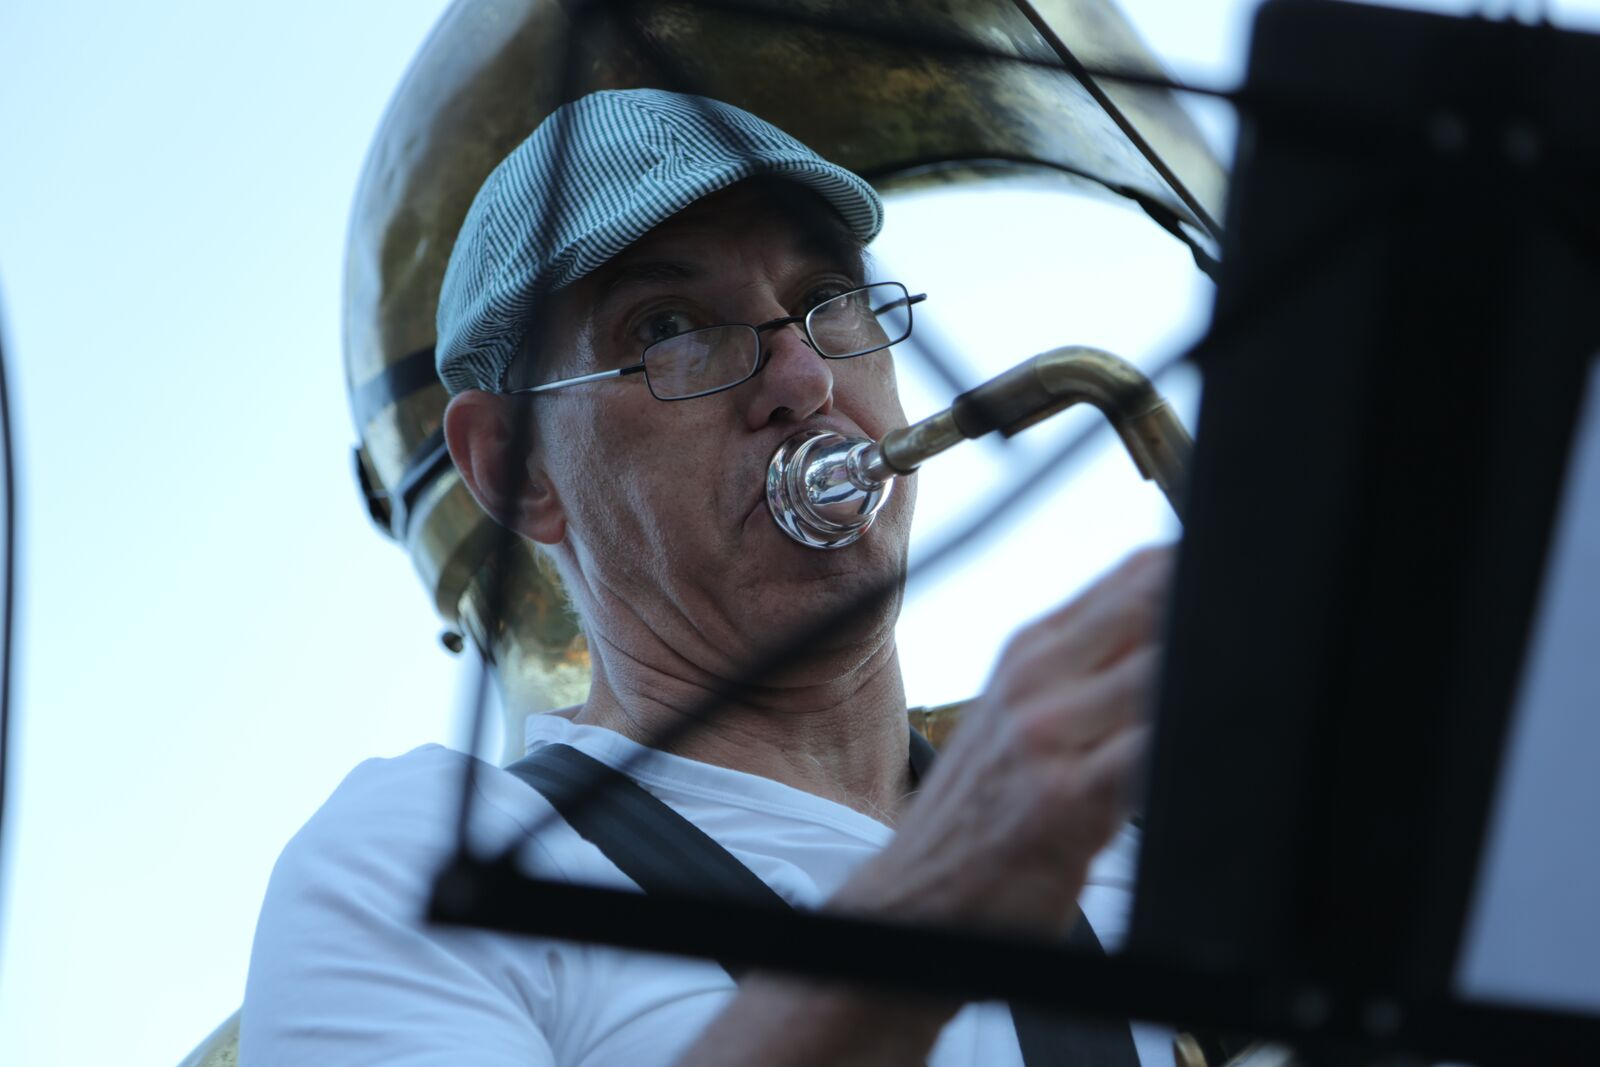 Juerg on sousaphone